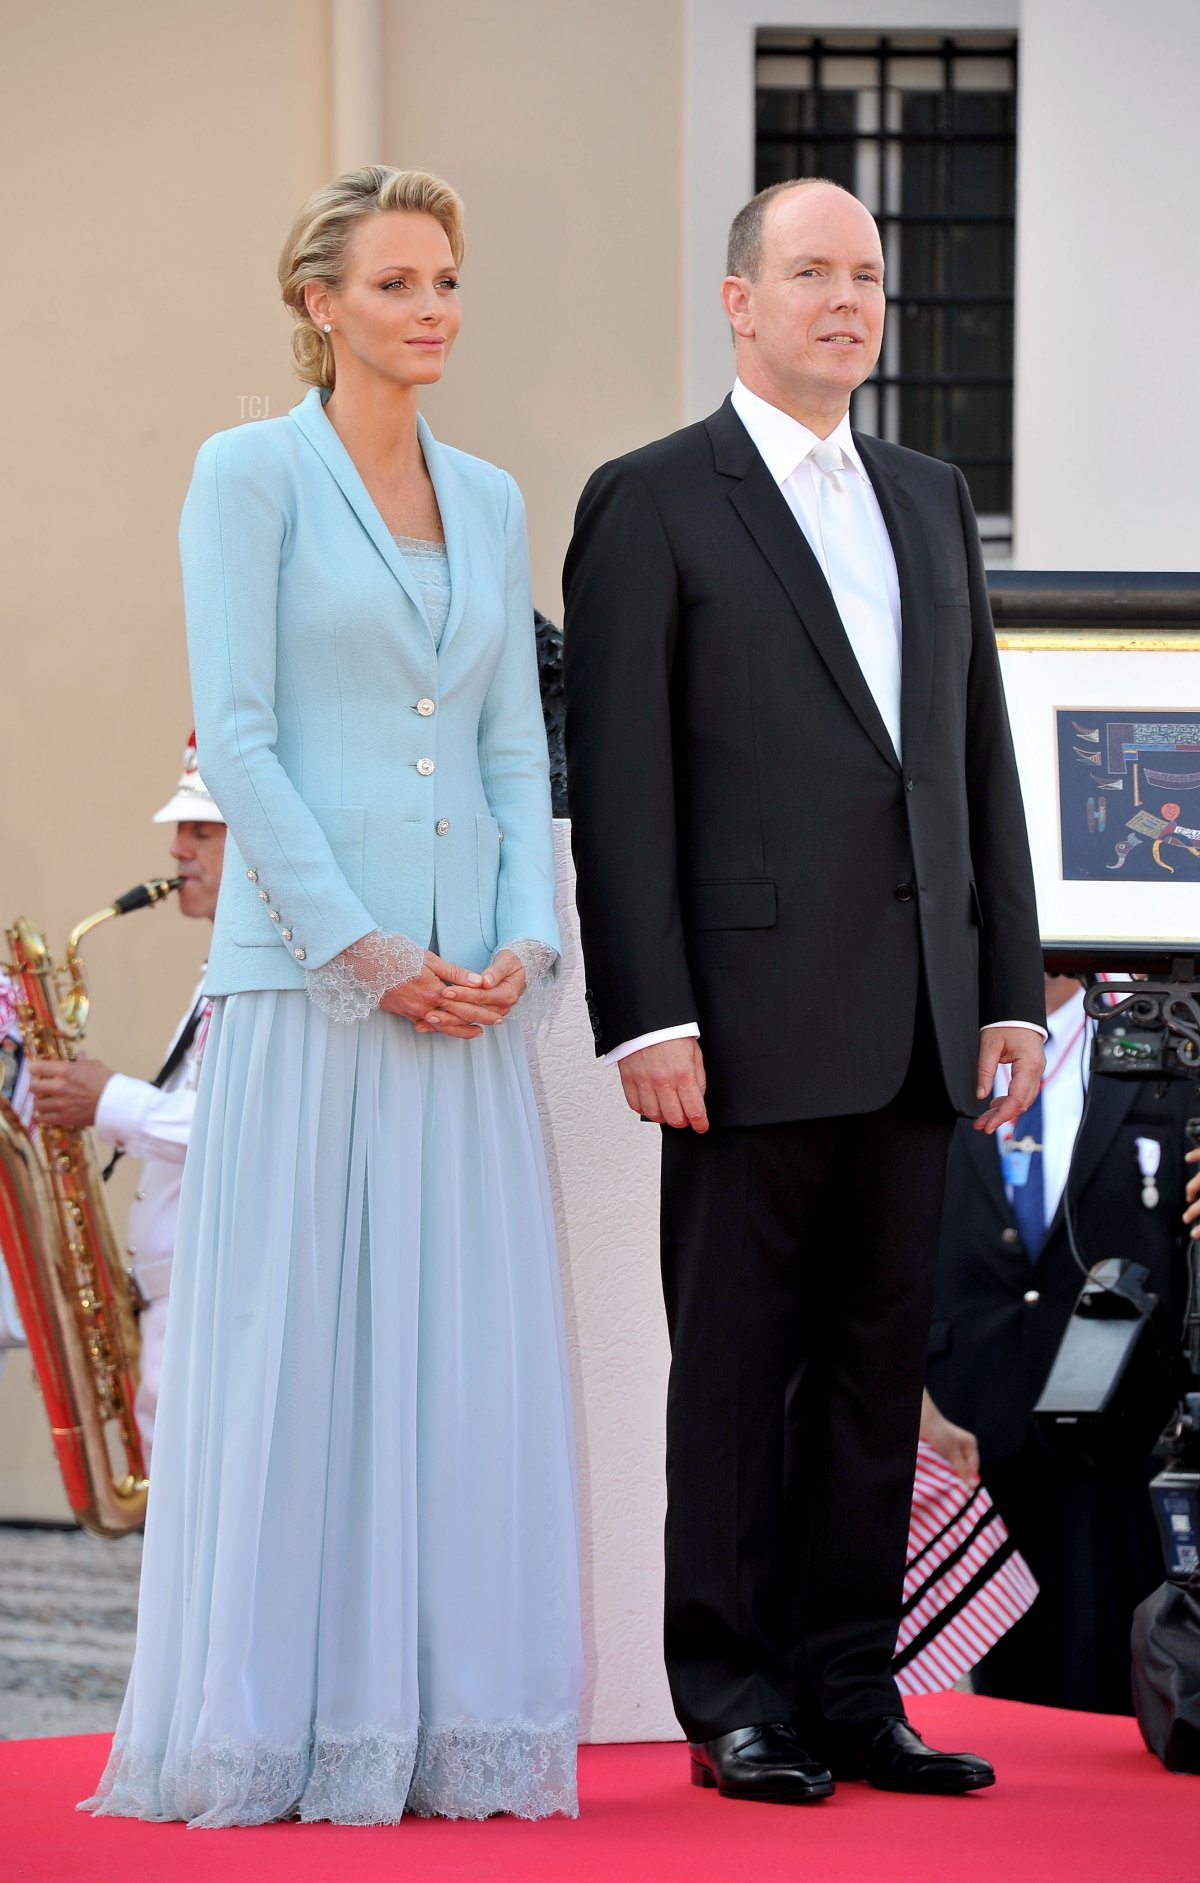 Princess Charlene of Monaco and Prince Albert II of Monaco look on after the civil ceremony of the Royal Wedding of Prince Albert II of Monaco to Charlene Wittstock at the Prince's Palace on July 1, 2011 in Monaco